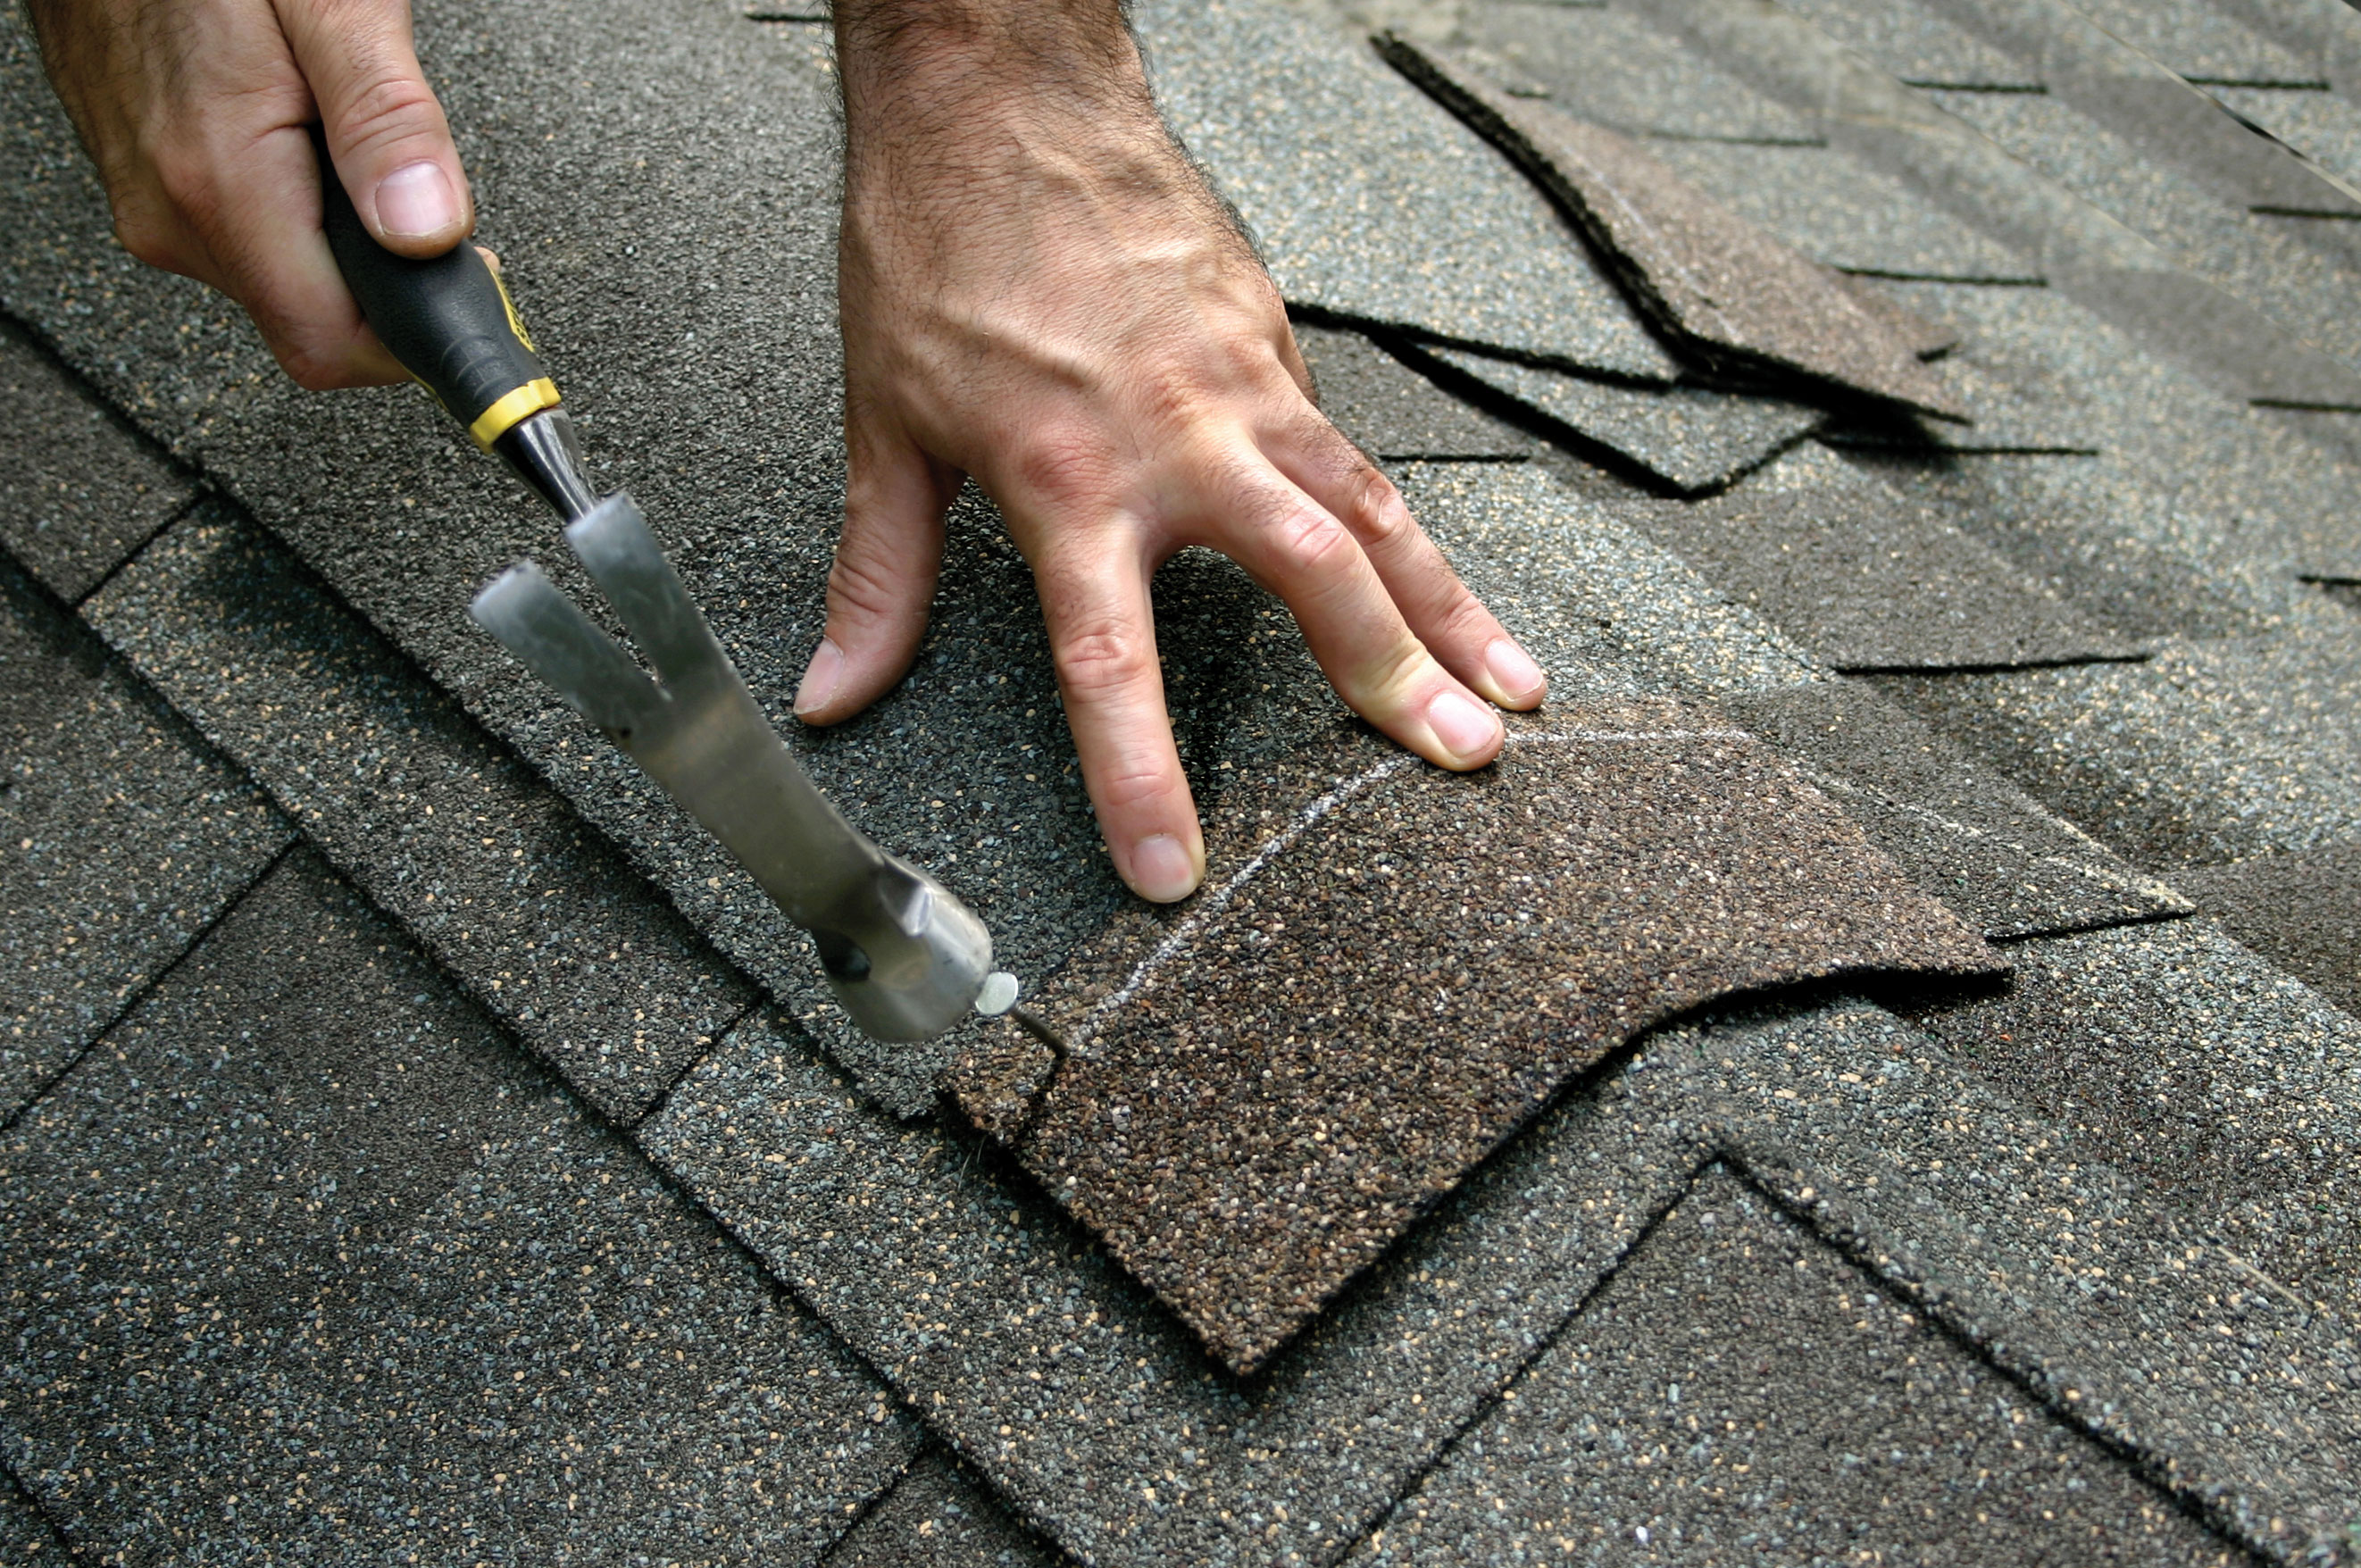 Missing Shingles Canton Michigan- Top Secrets For Your Best Roofing Repair